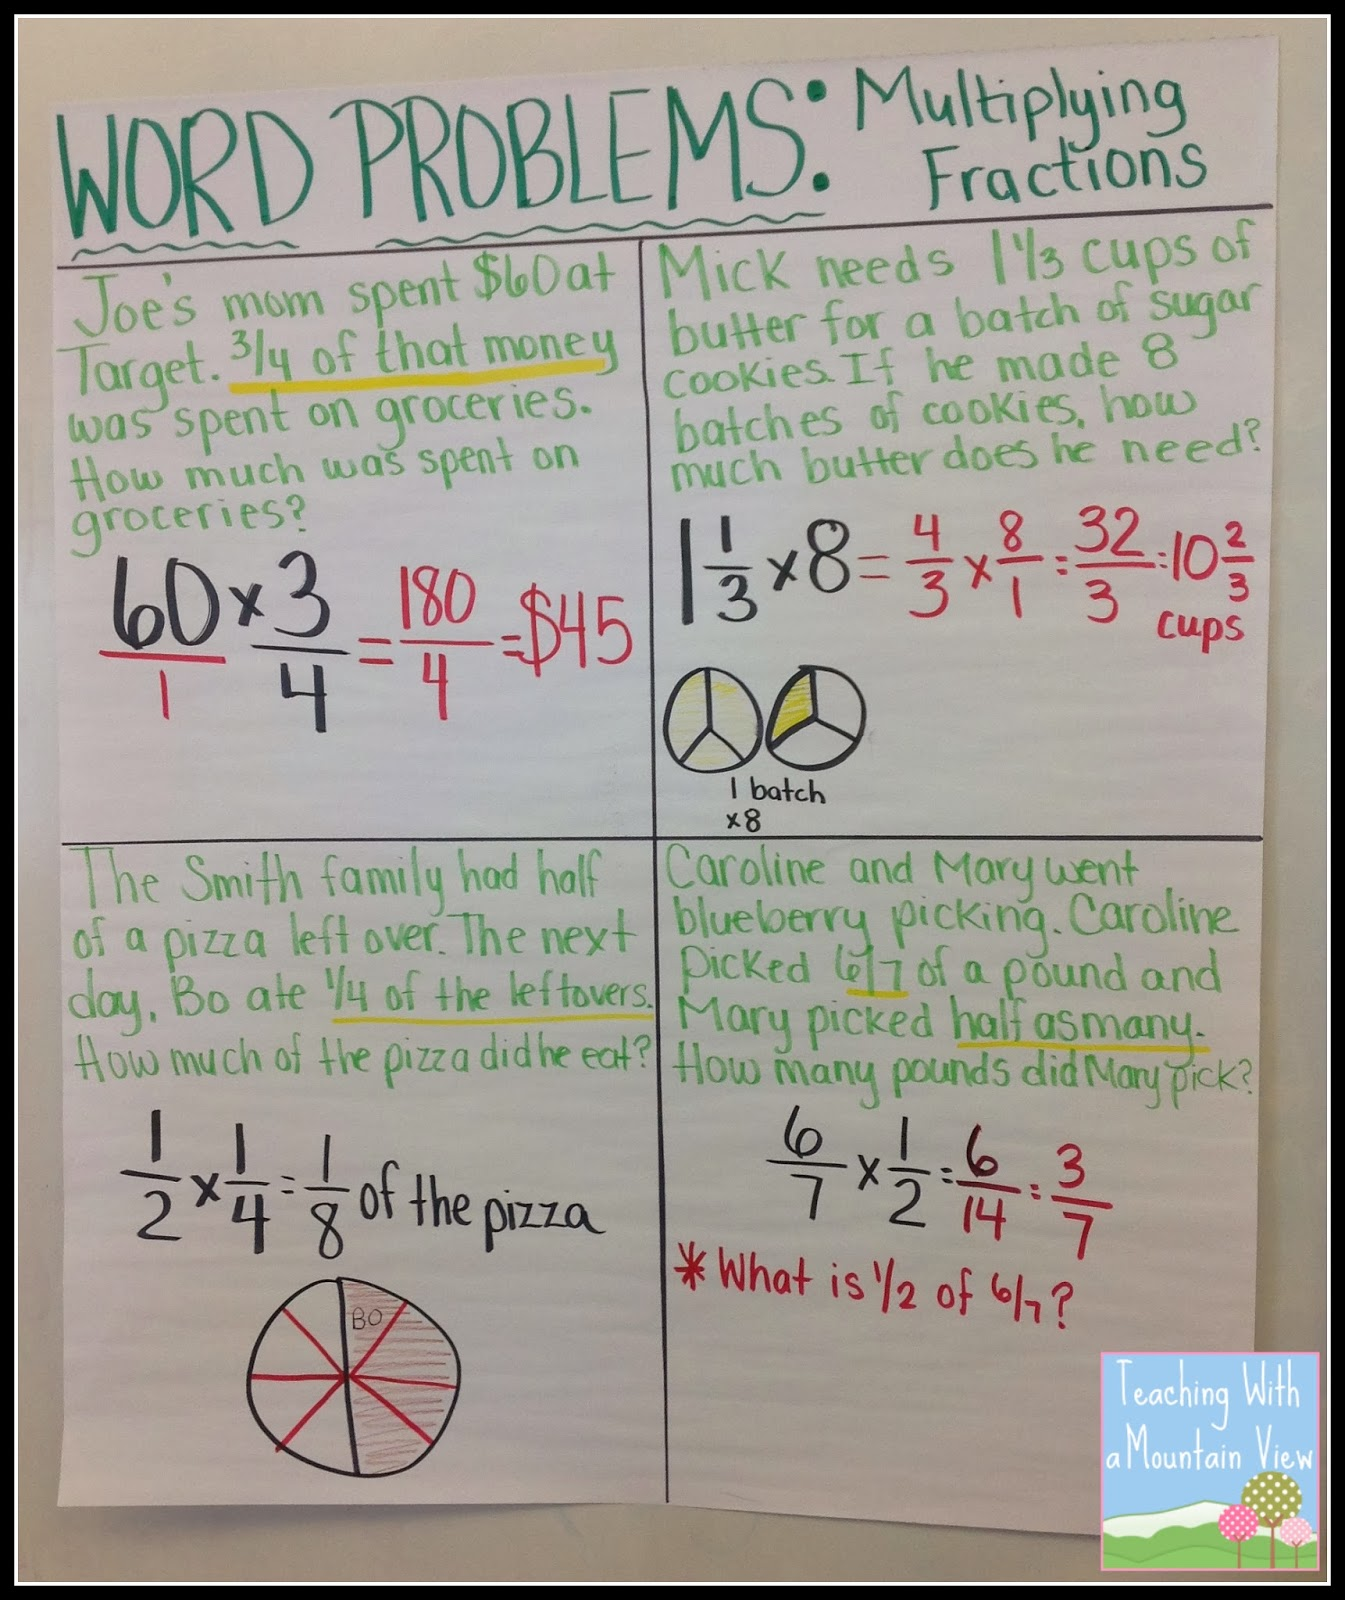 Worksheet Multiplying Fractions Word Problems Worksheets